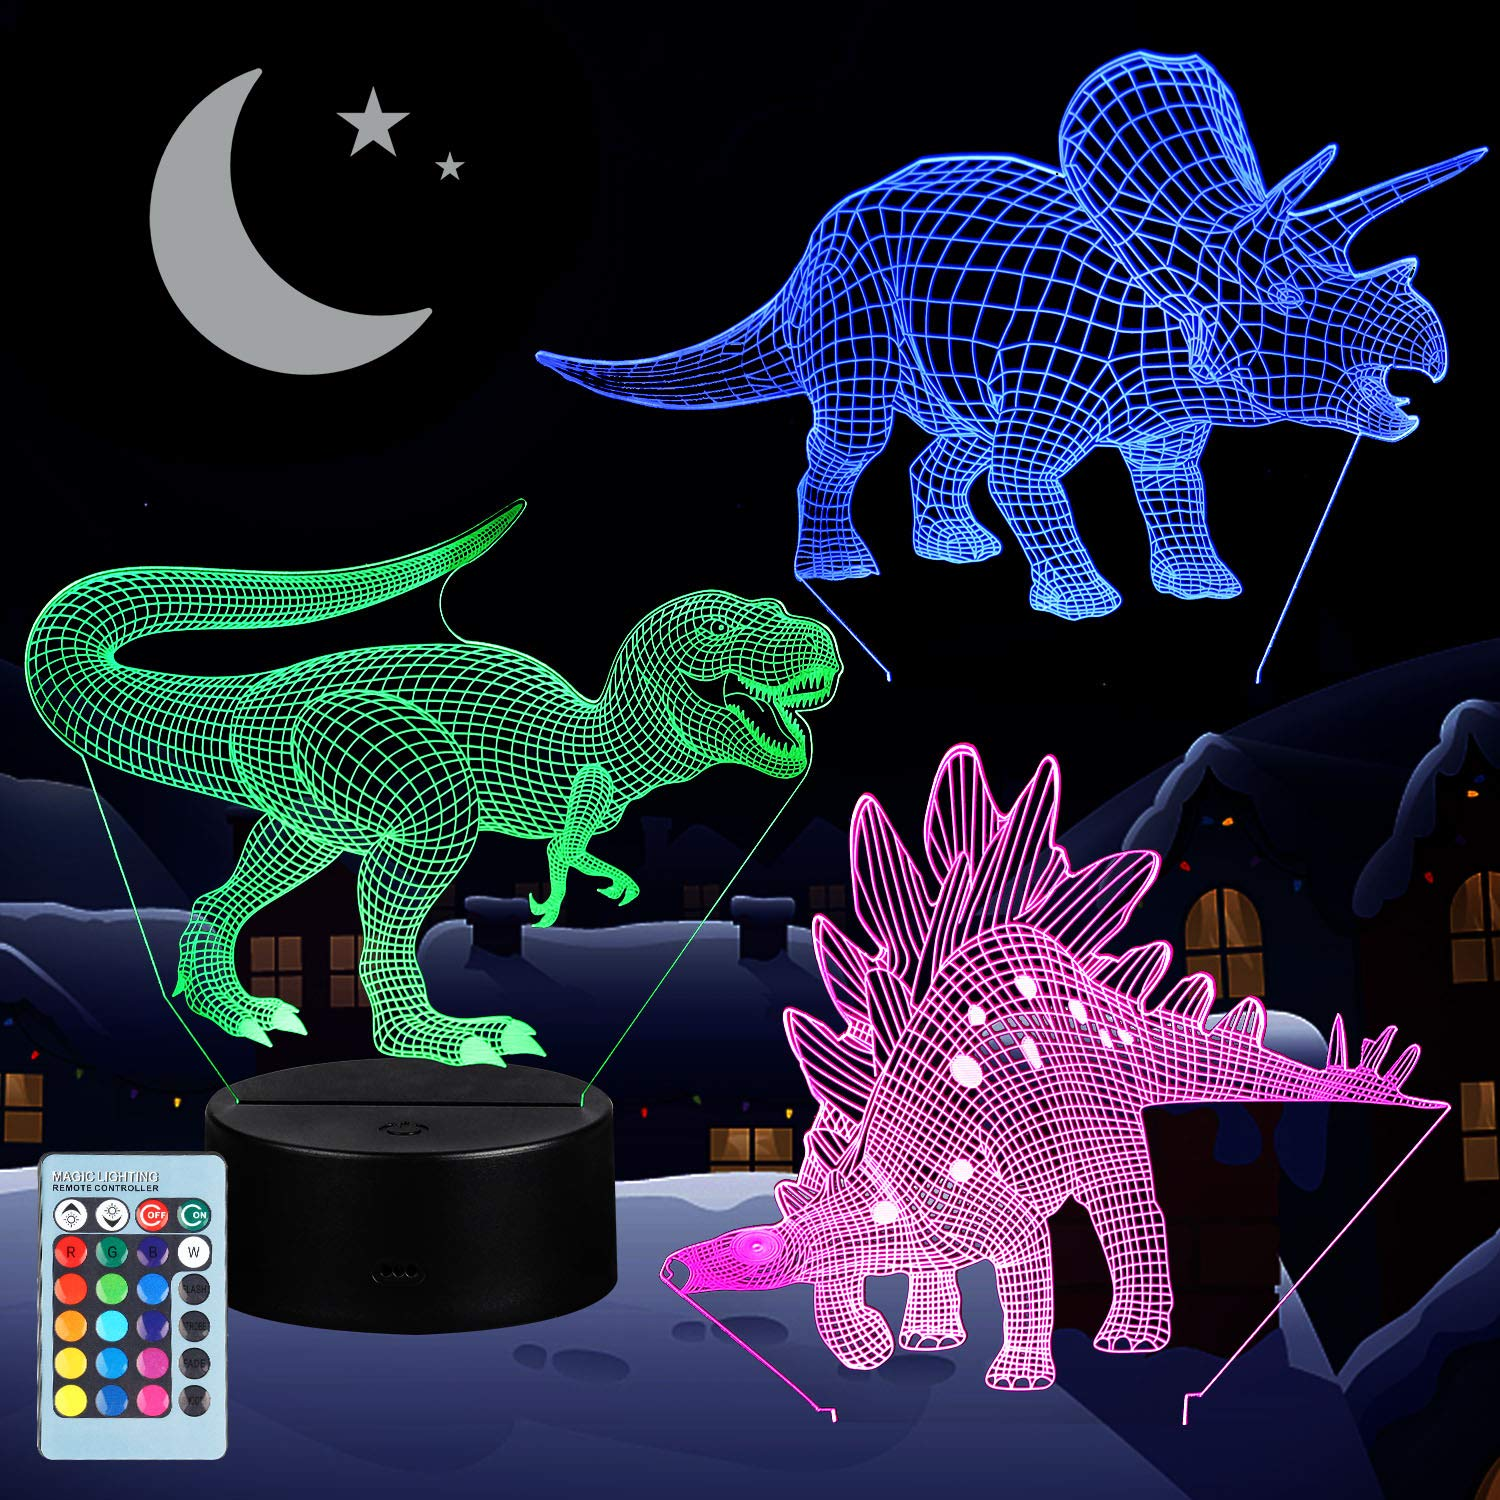 3D Dinosaur Night Light, VSATEN 3D Illusion Lamp Three Pattern and 7 Color Change Decor Lamp with Remote Control for Living Bed Room Bar Best Gift Toys (3 Packs) by VSATEN